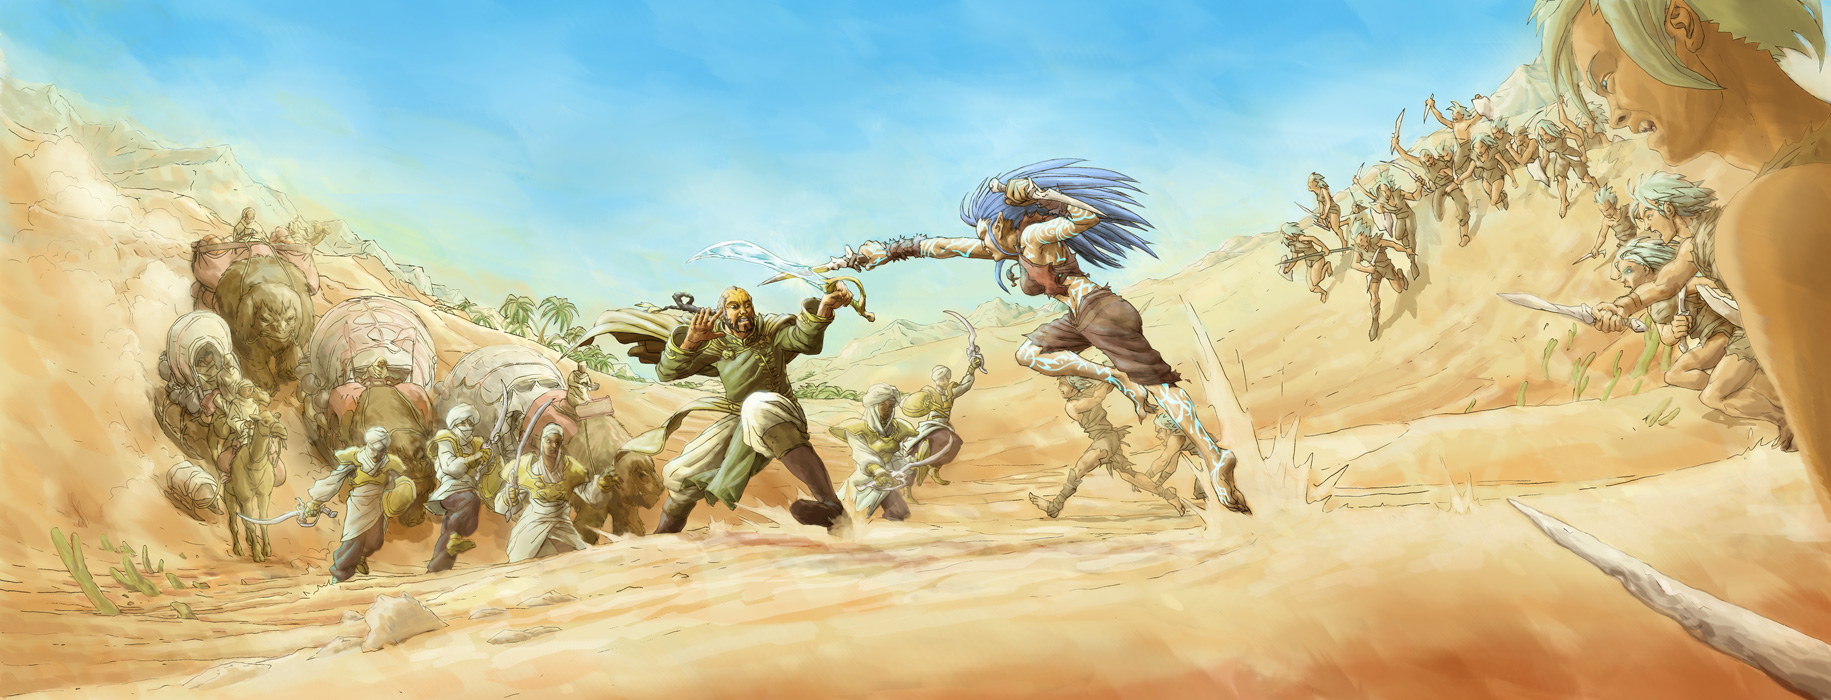 Exalted RPG 3rd Edition 'The South' setting illustration